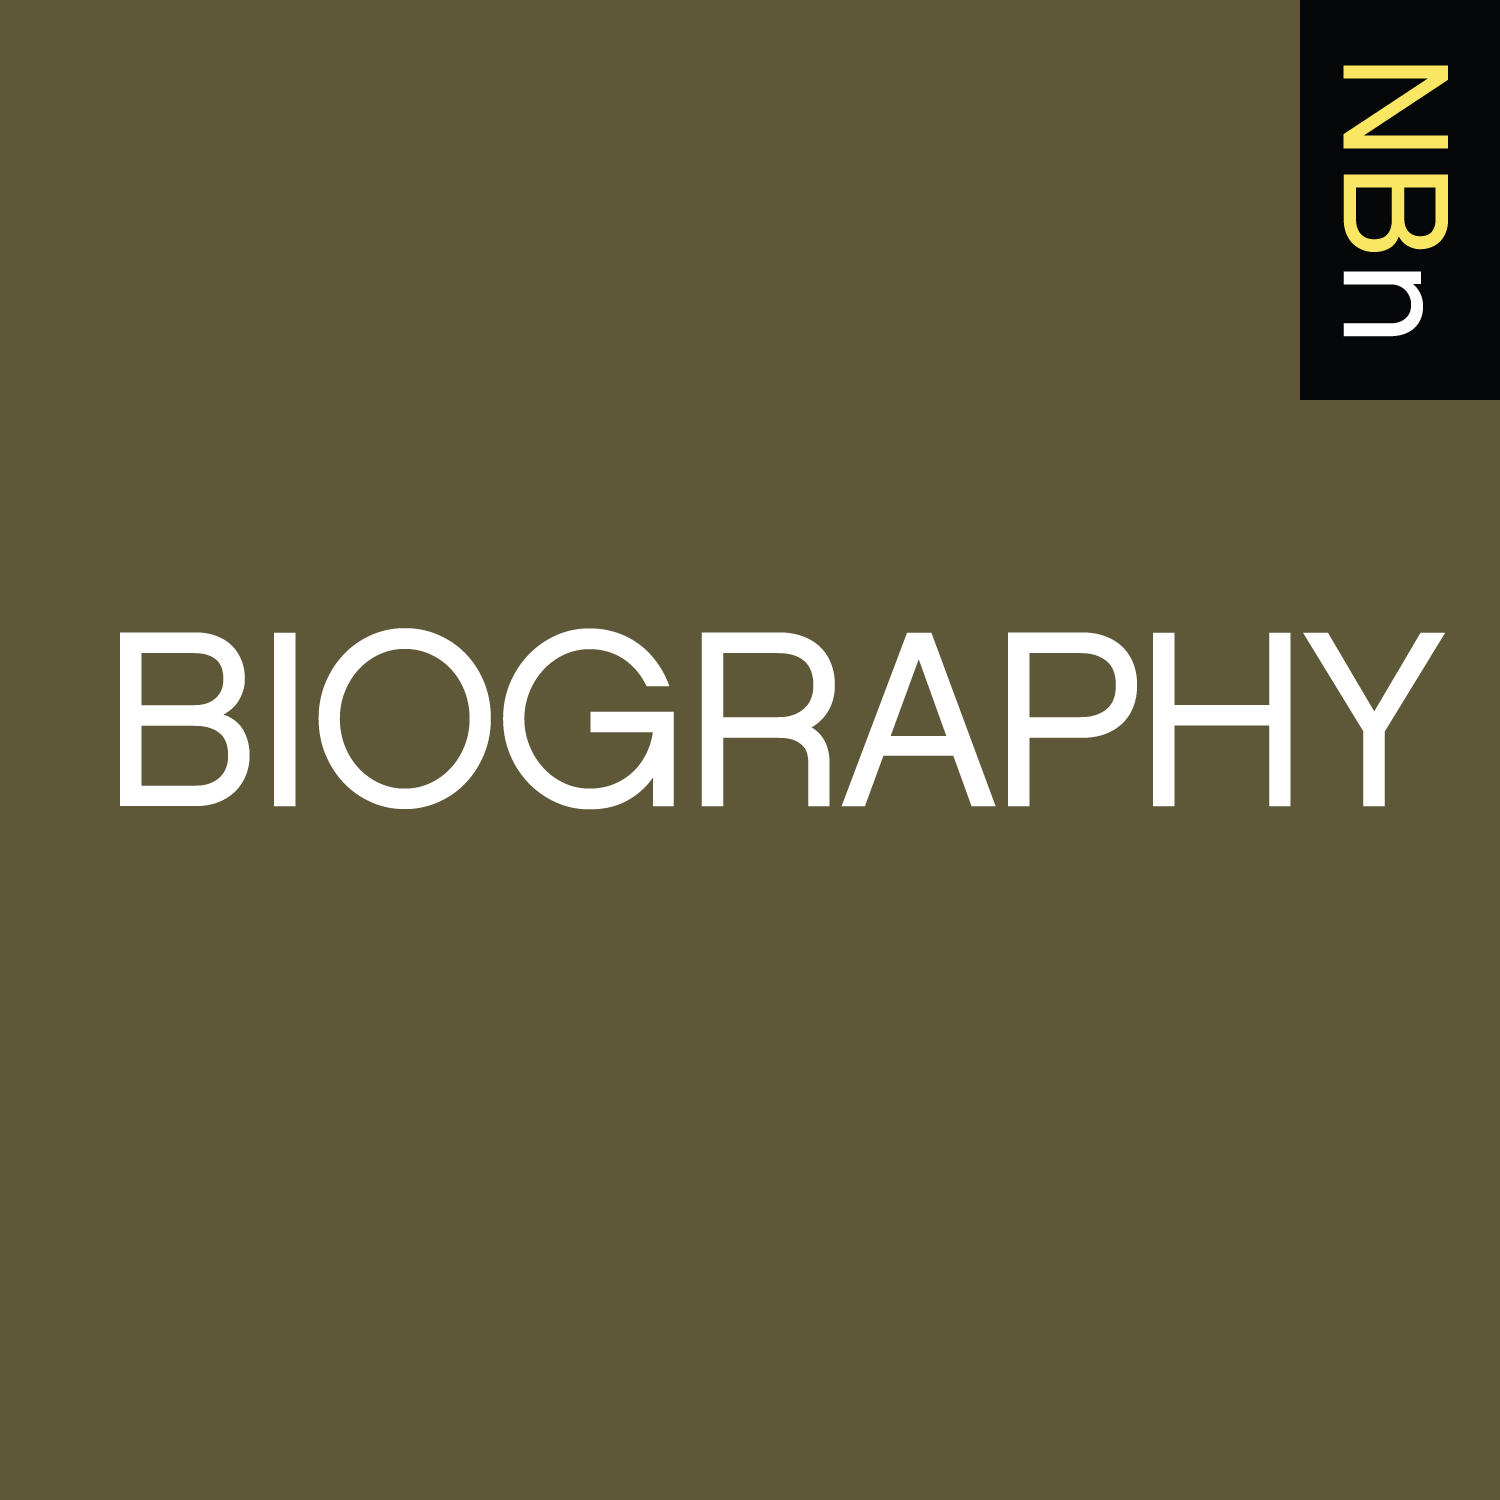 New Books in Biography podcast tile